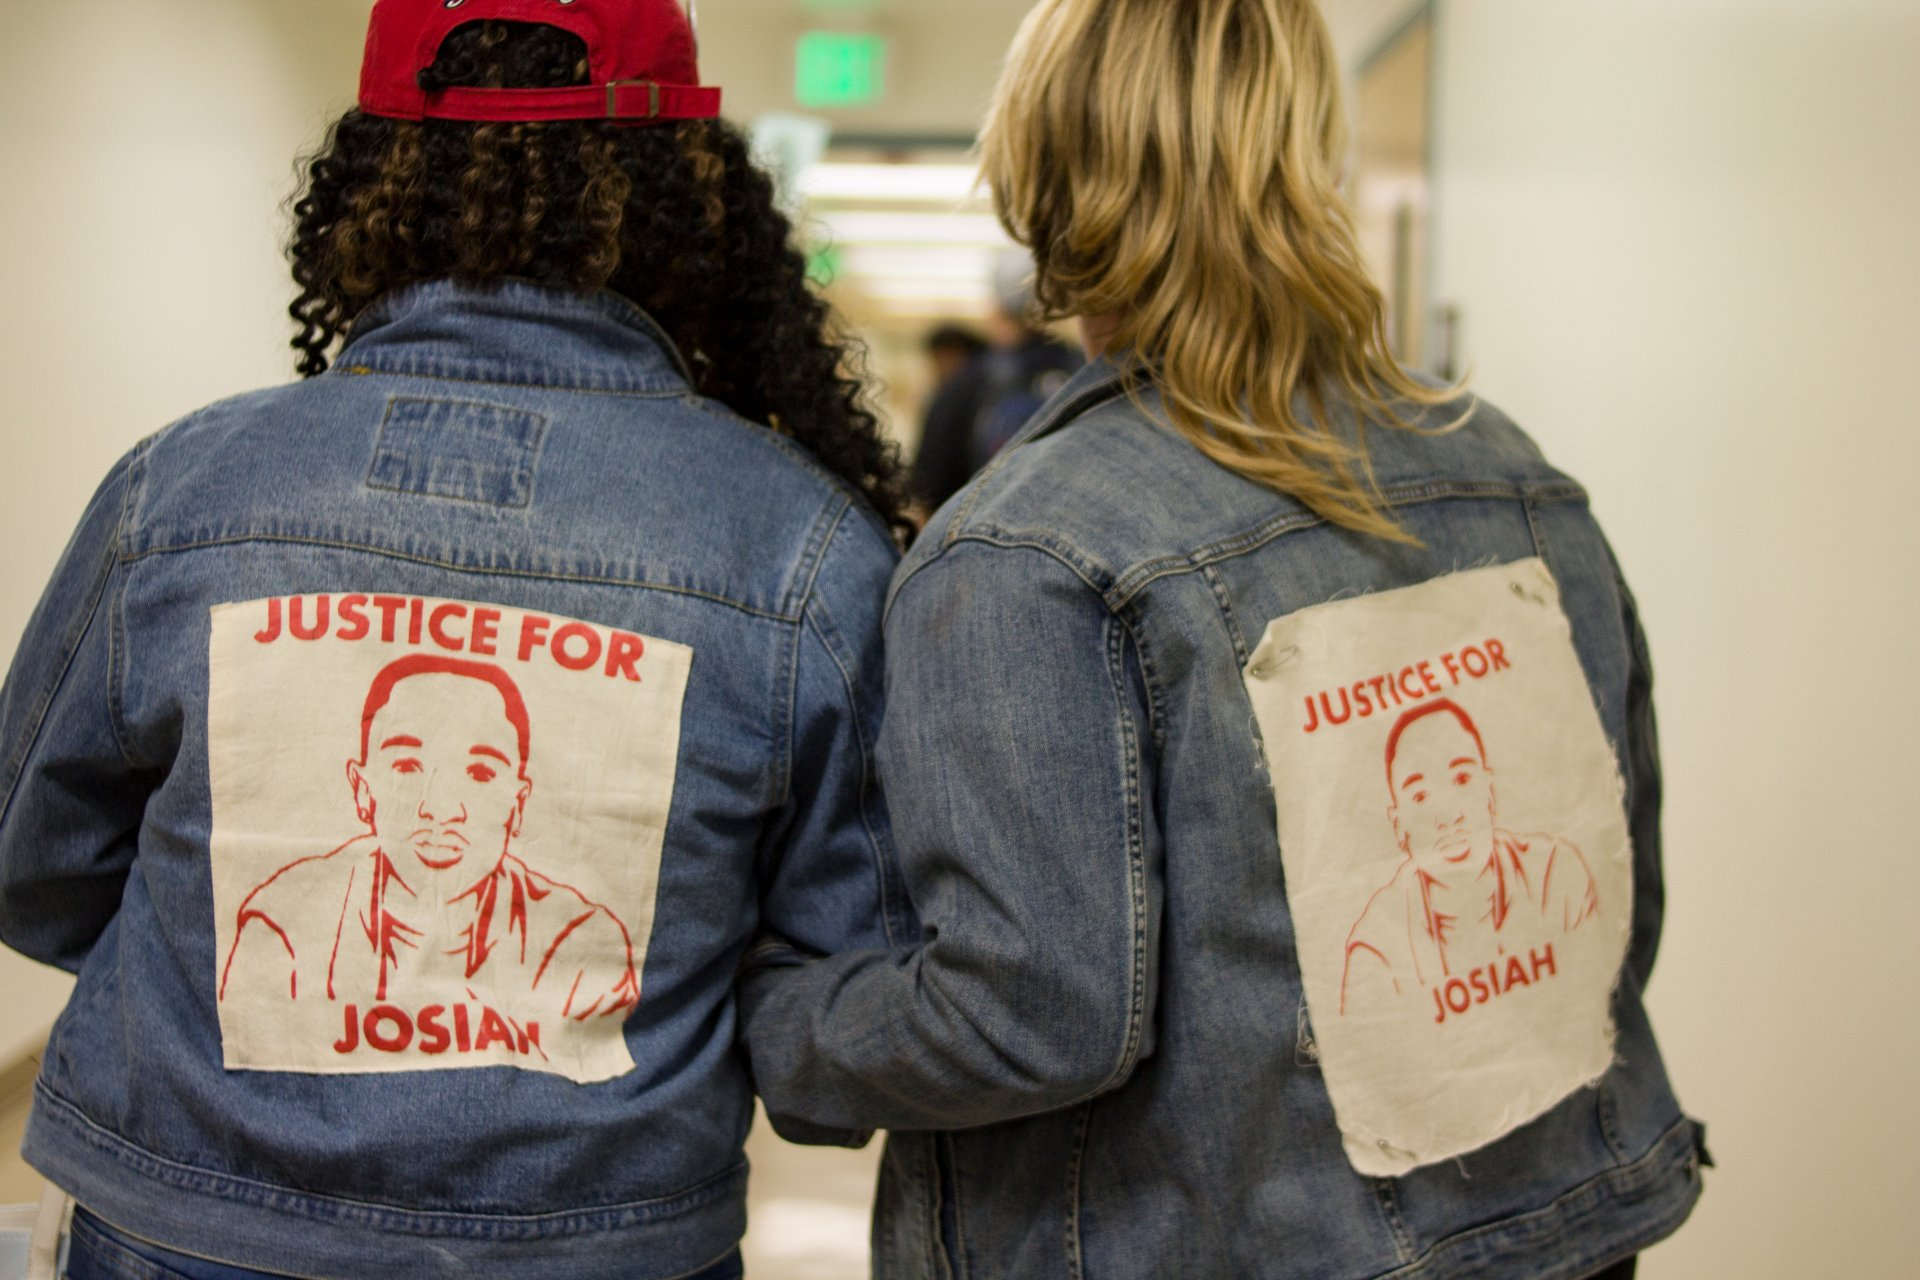 Charmaine Lawson, mother of Josiah Lawson, and Jill Larrabee, Justice for Josiah committee member, speak of acountability and safety at Sacramento State University on Oct. 18, 2018. | Photo by Tony Wallin